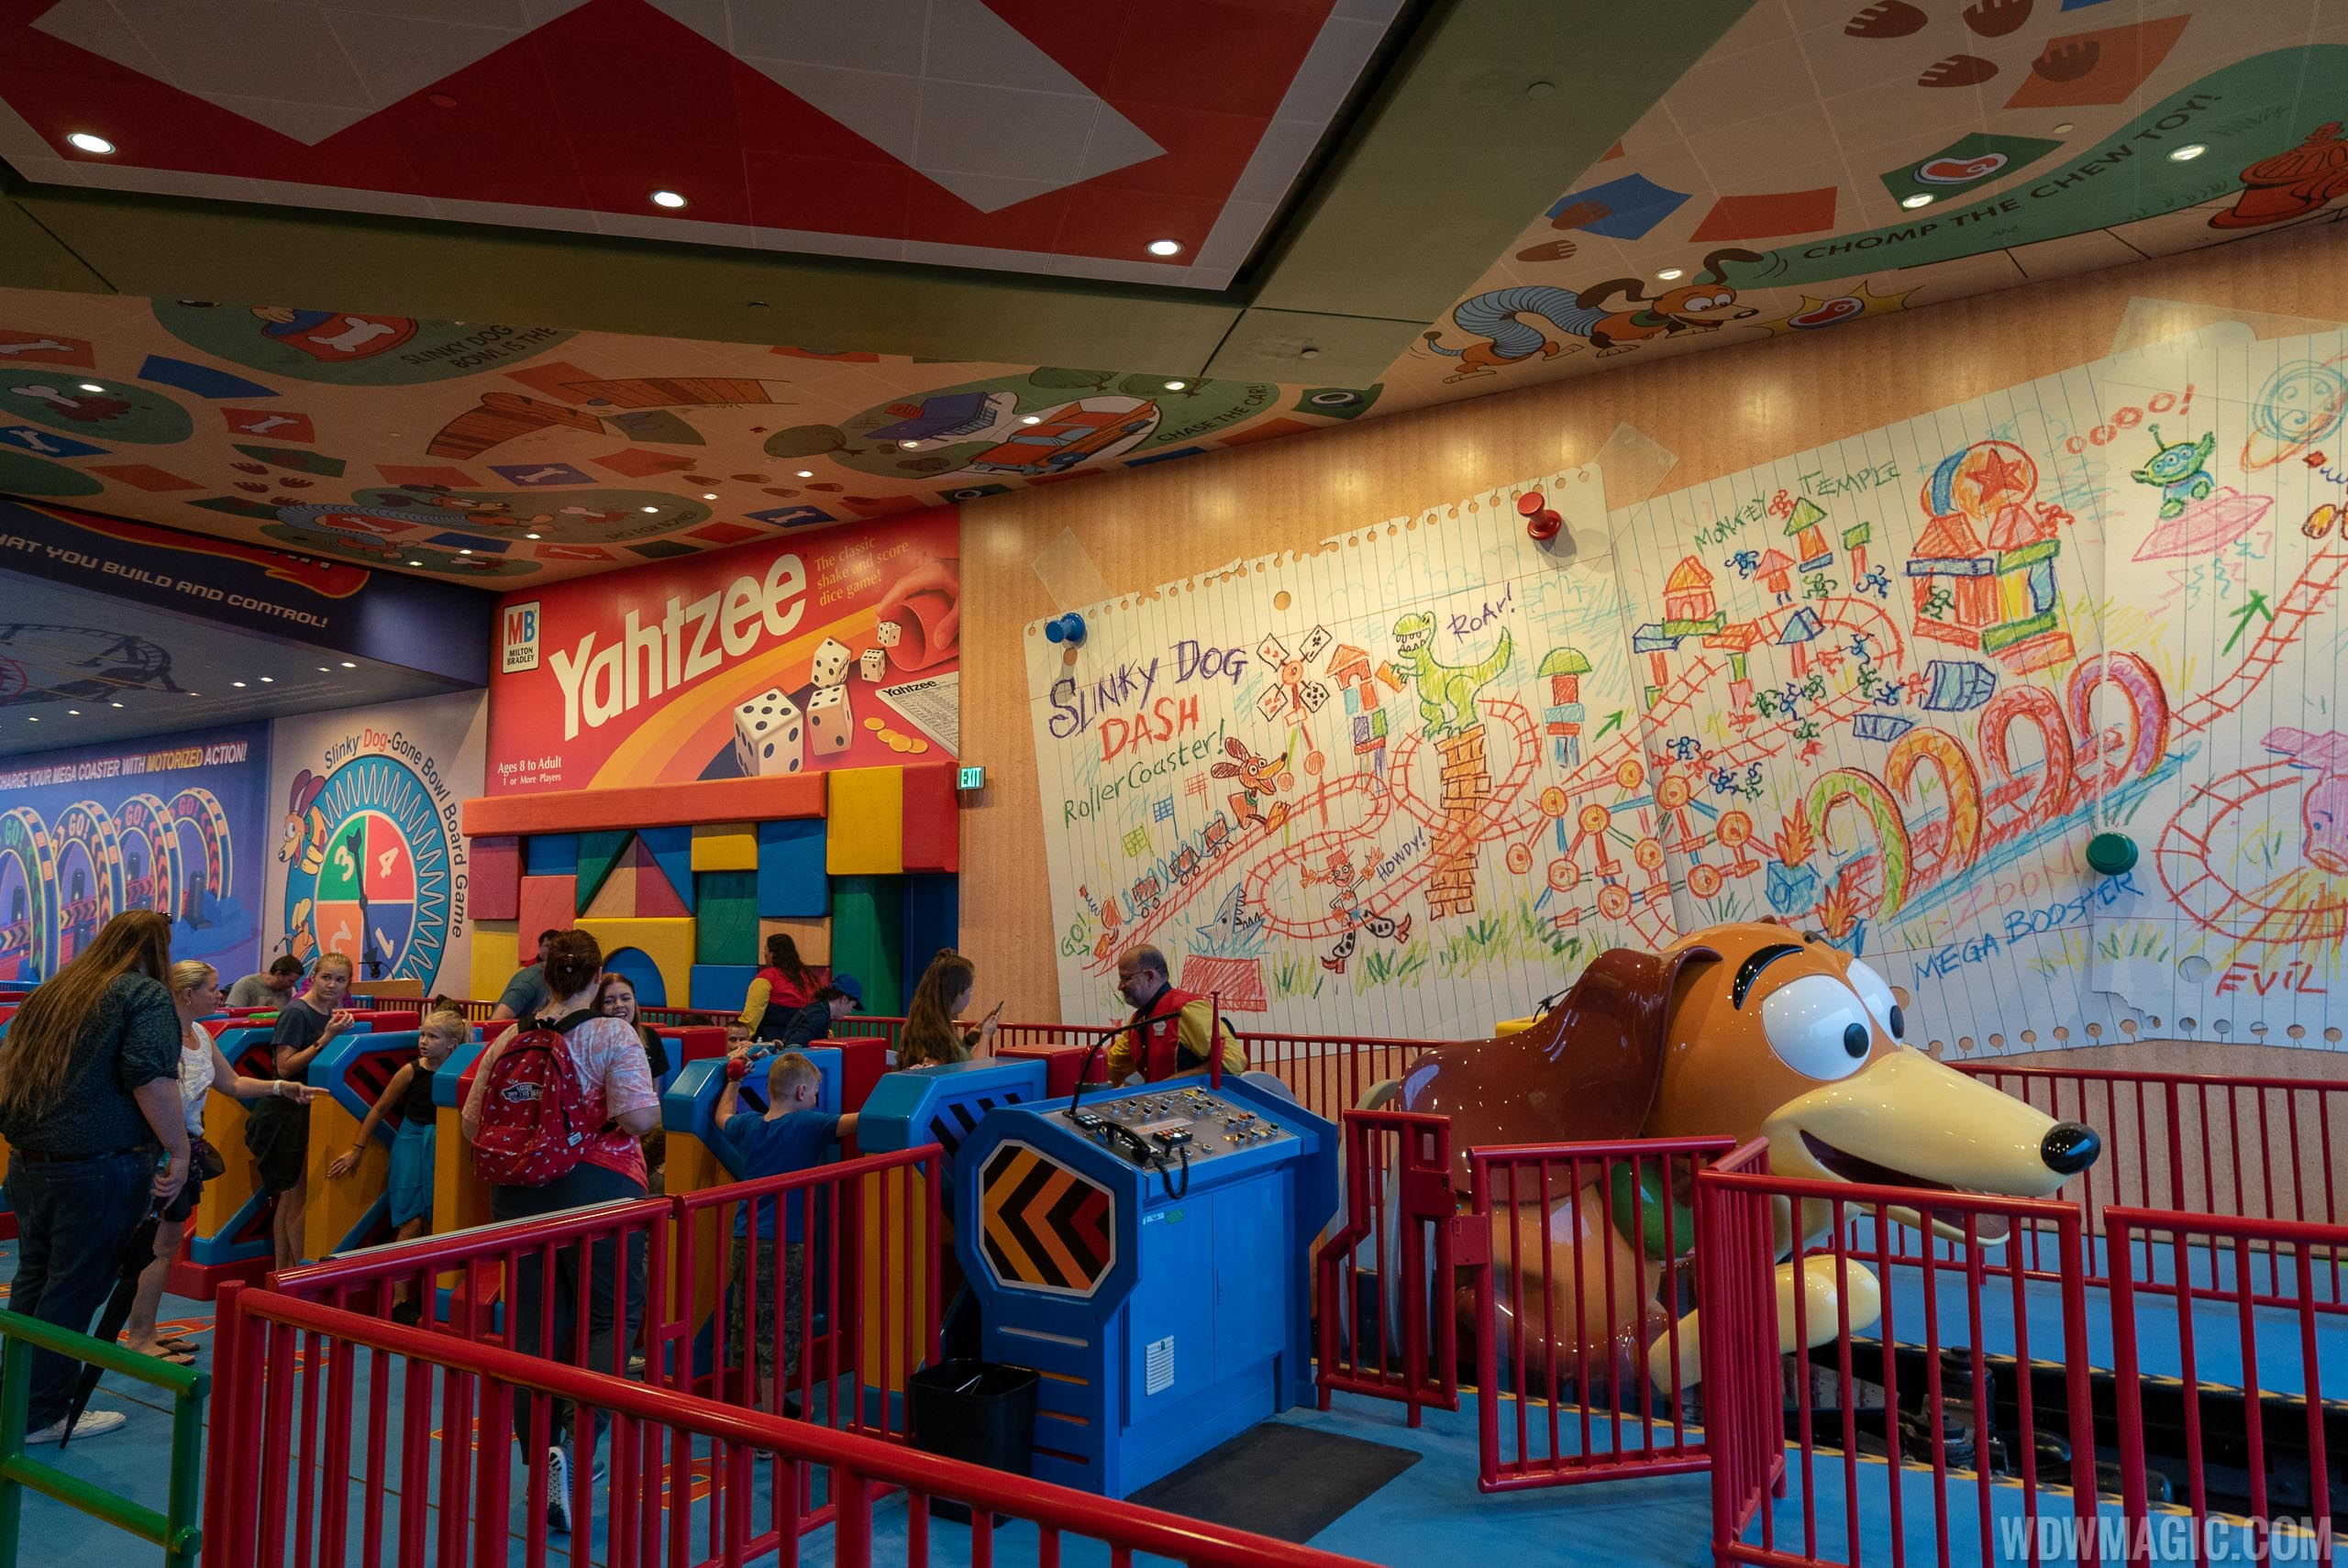 Slinky Dog Dash loading station